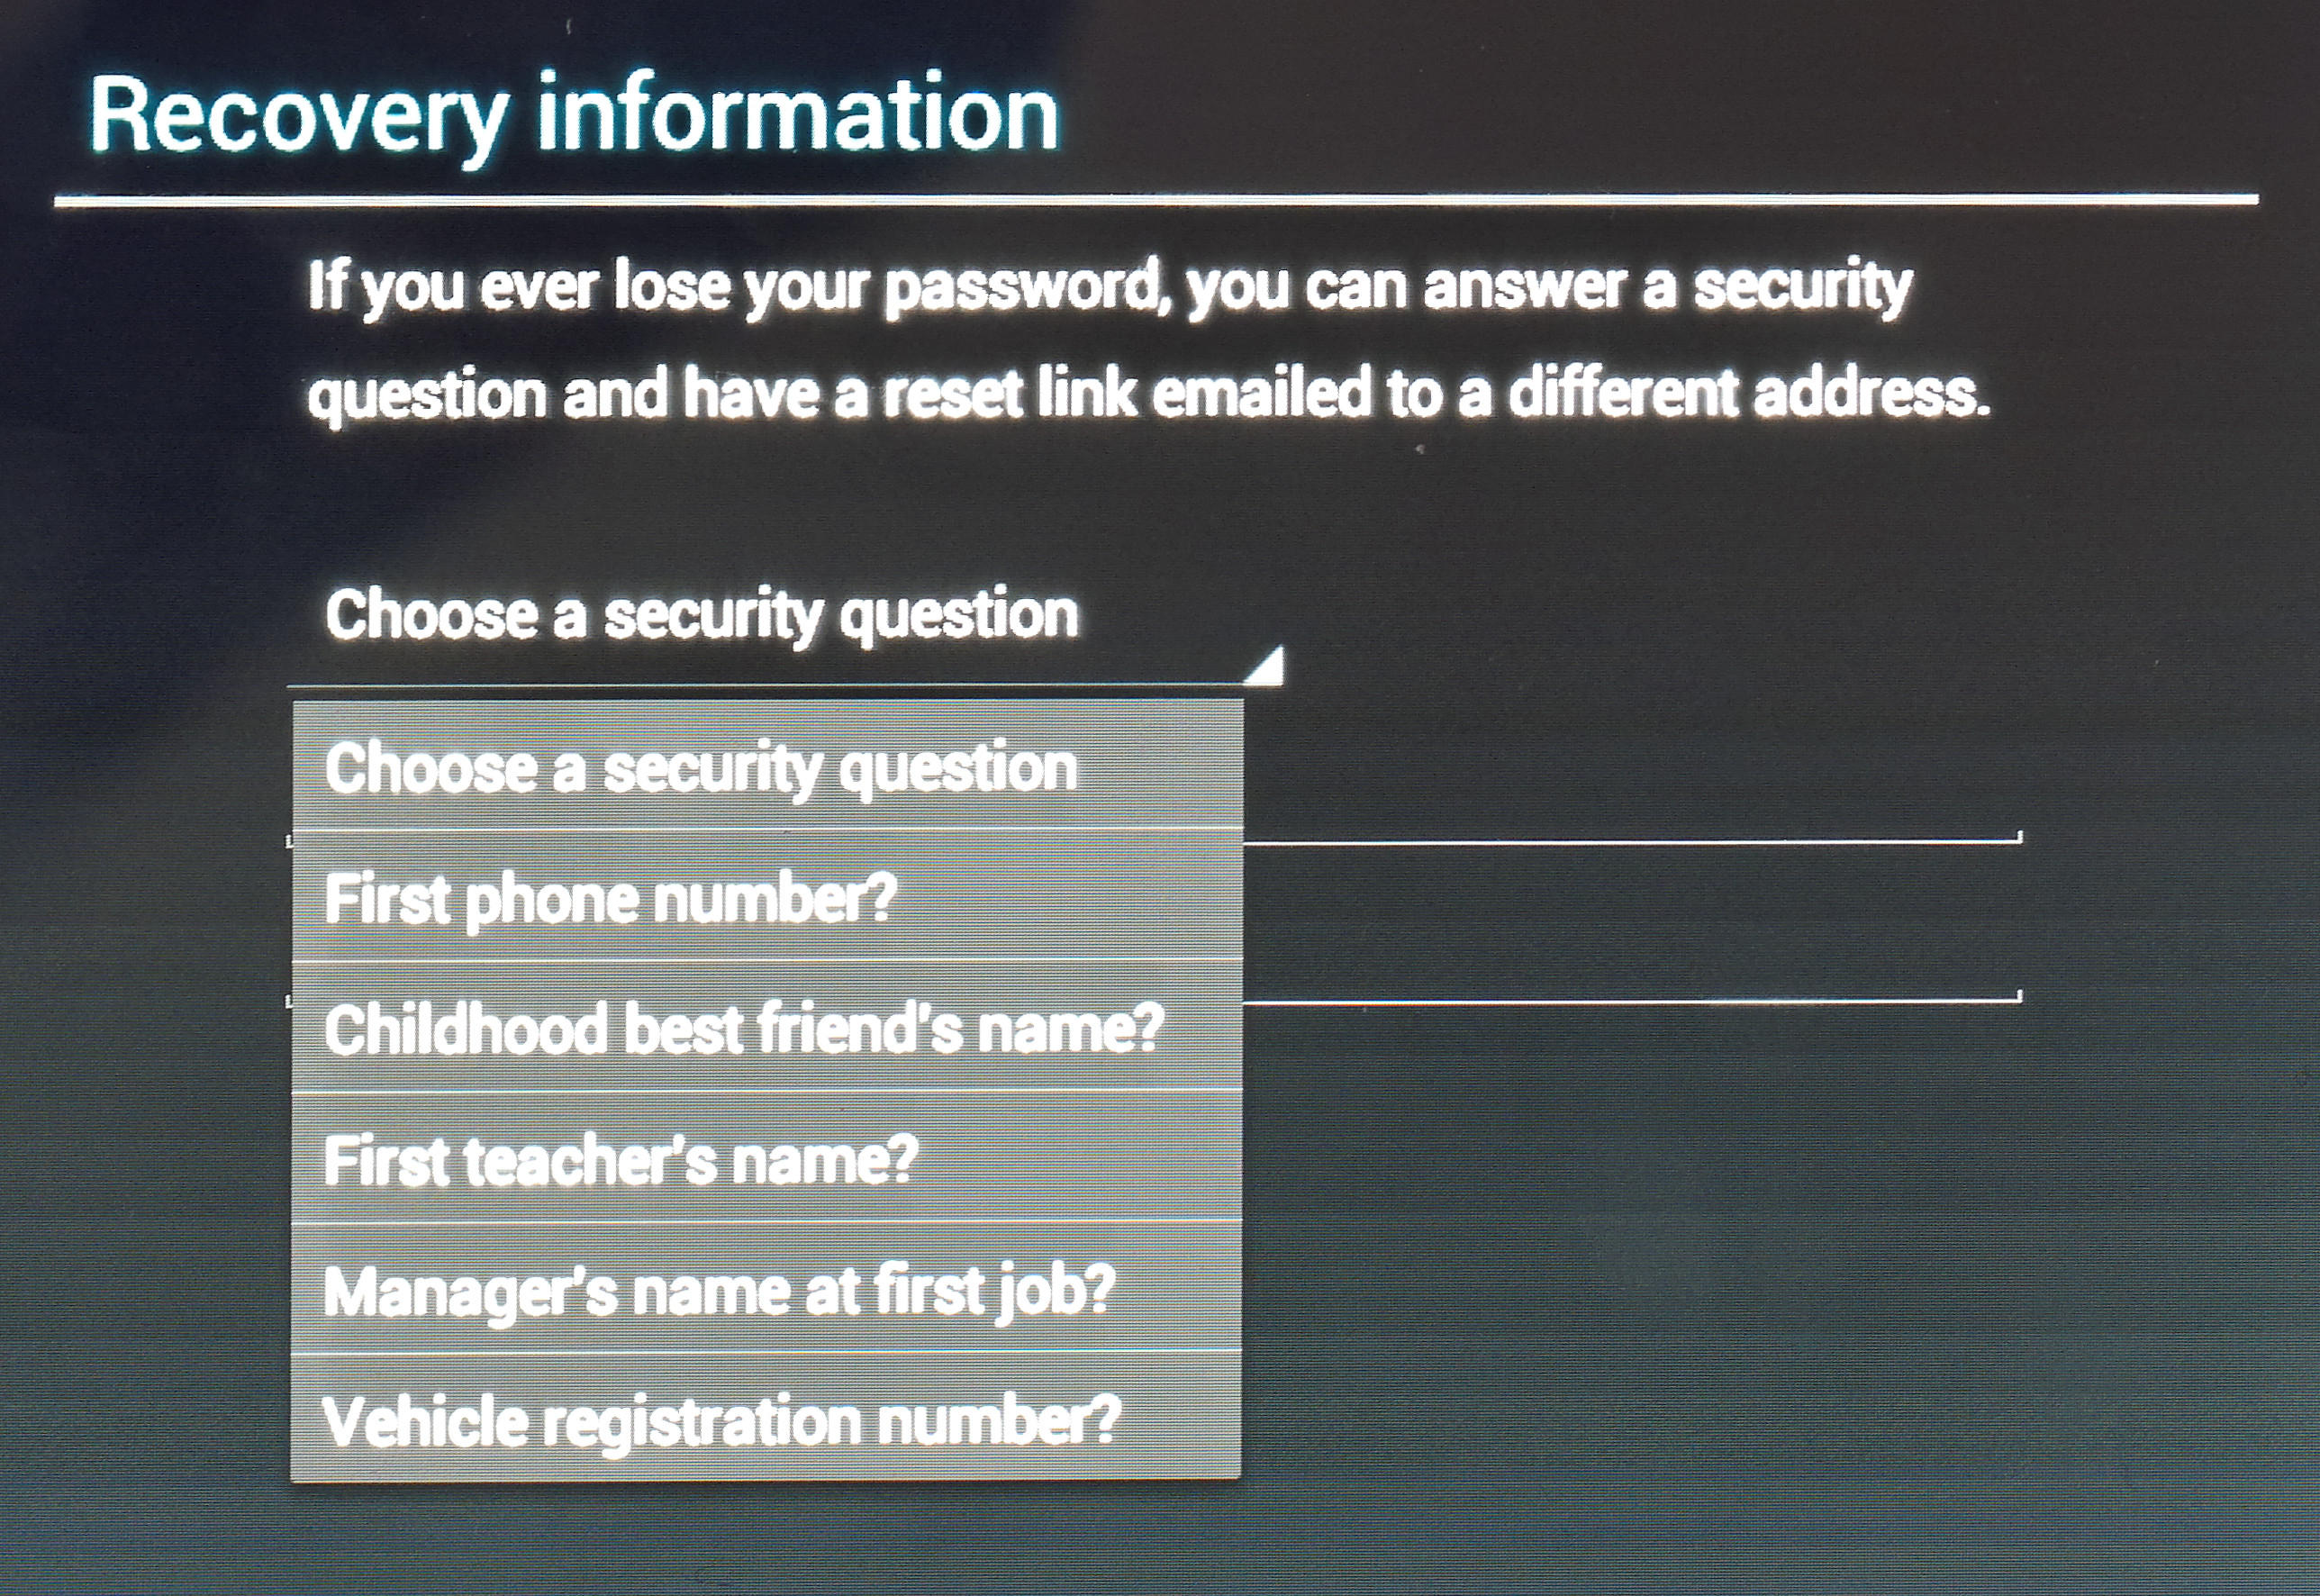 Security-question.jpeg